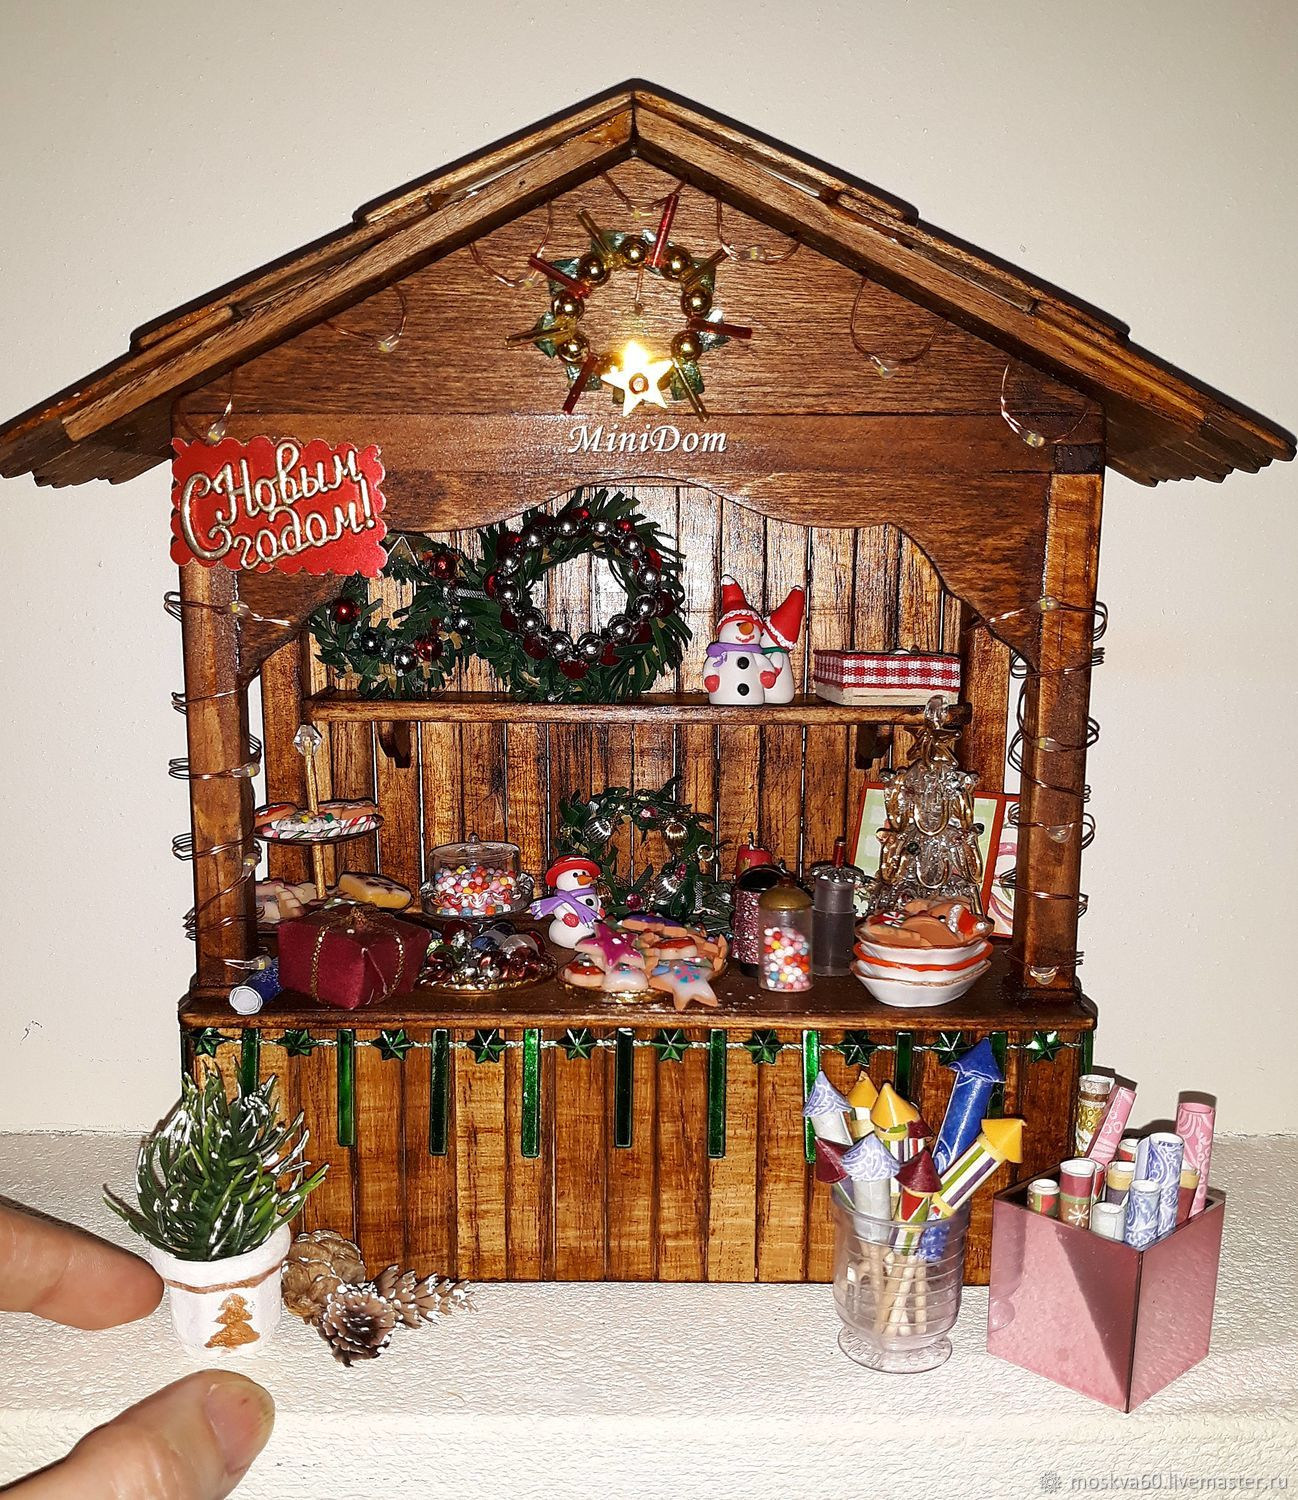 Christmas counter display cases for Dollhouse miniatures ...